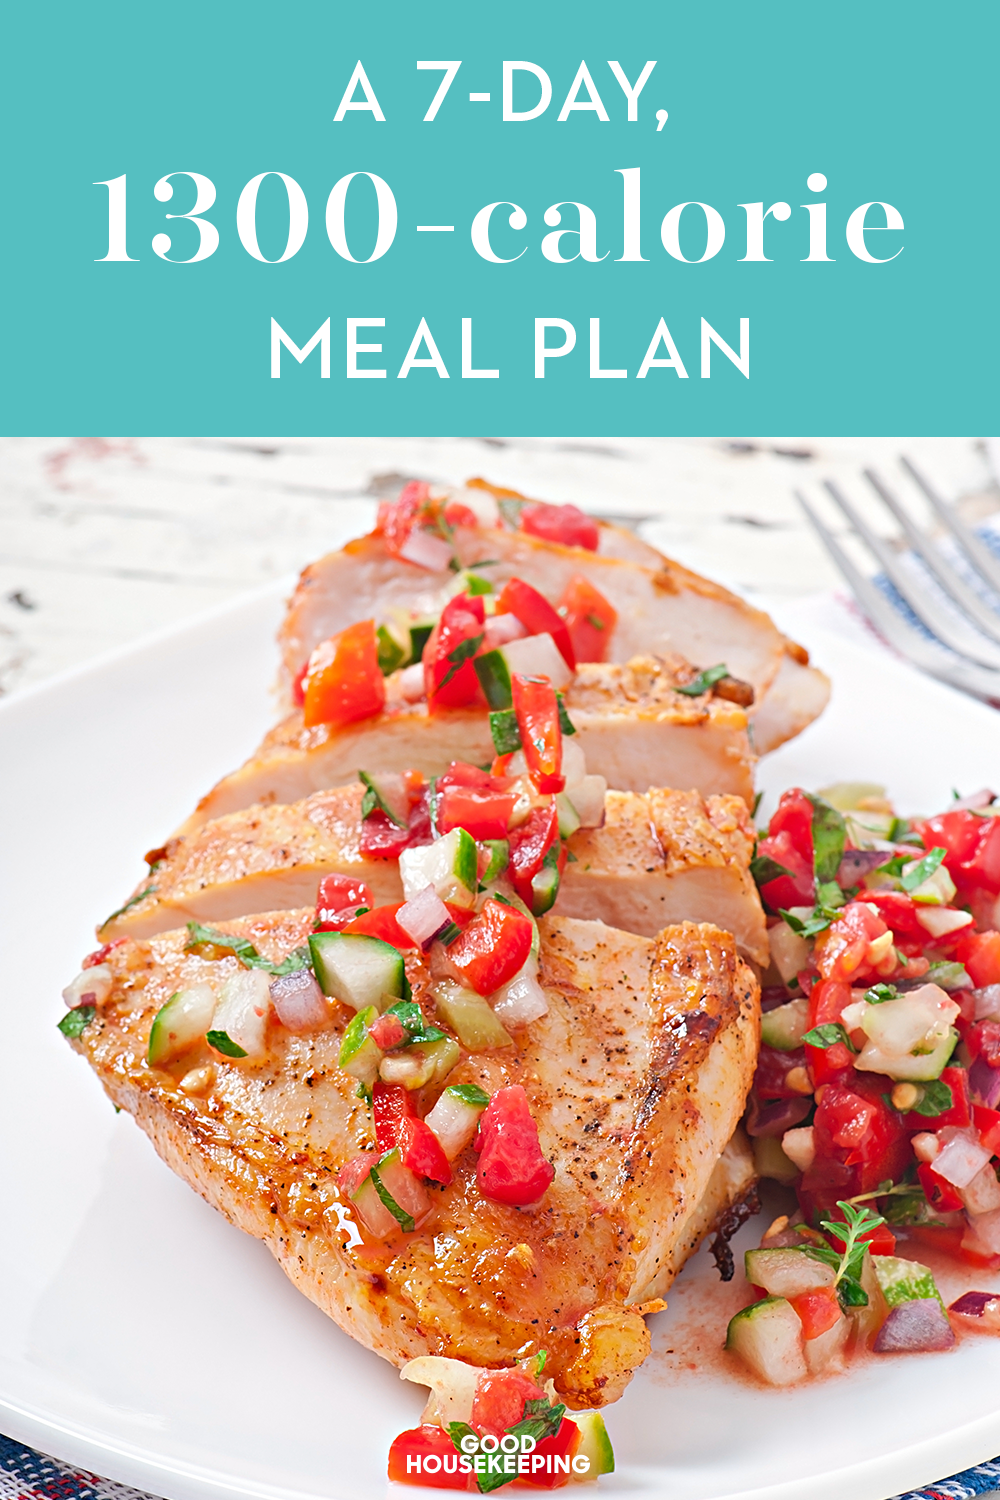 This 7-Day, 1,300-Calorie Meal Plan Packs in All the Snacks #300caloriemeals